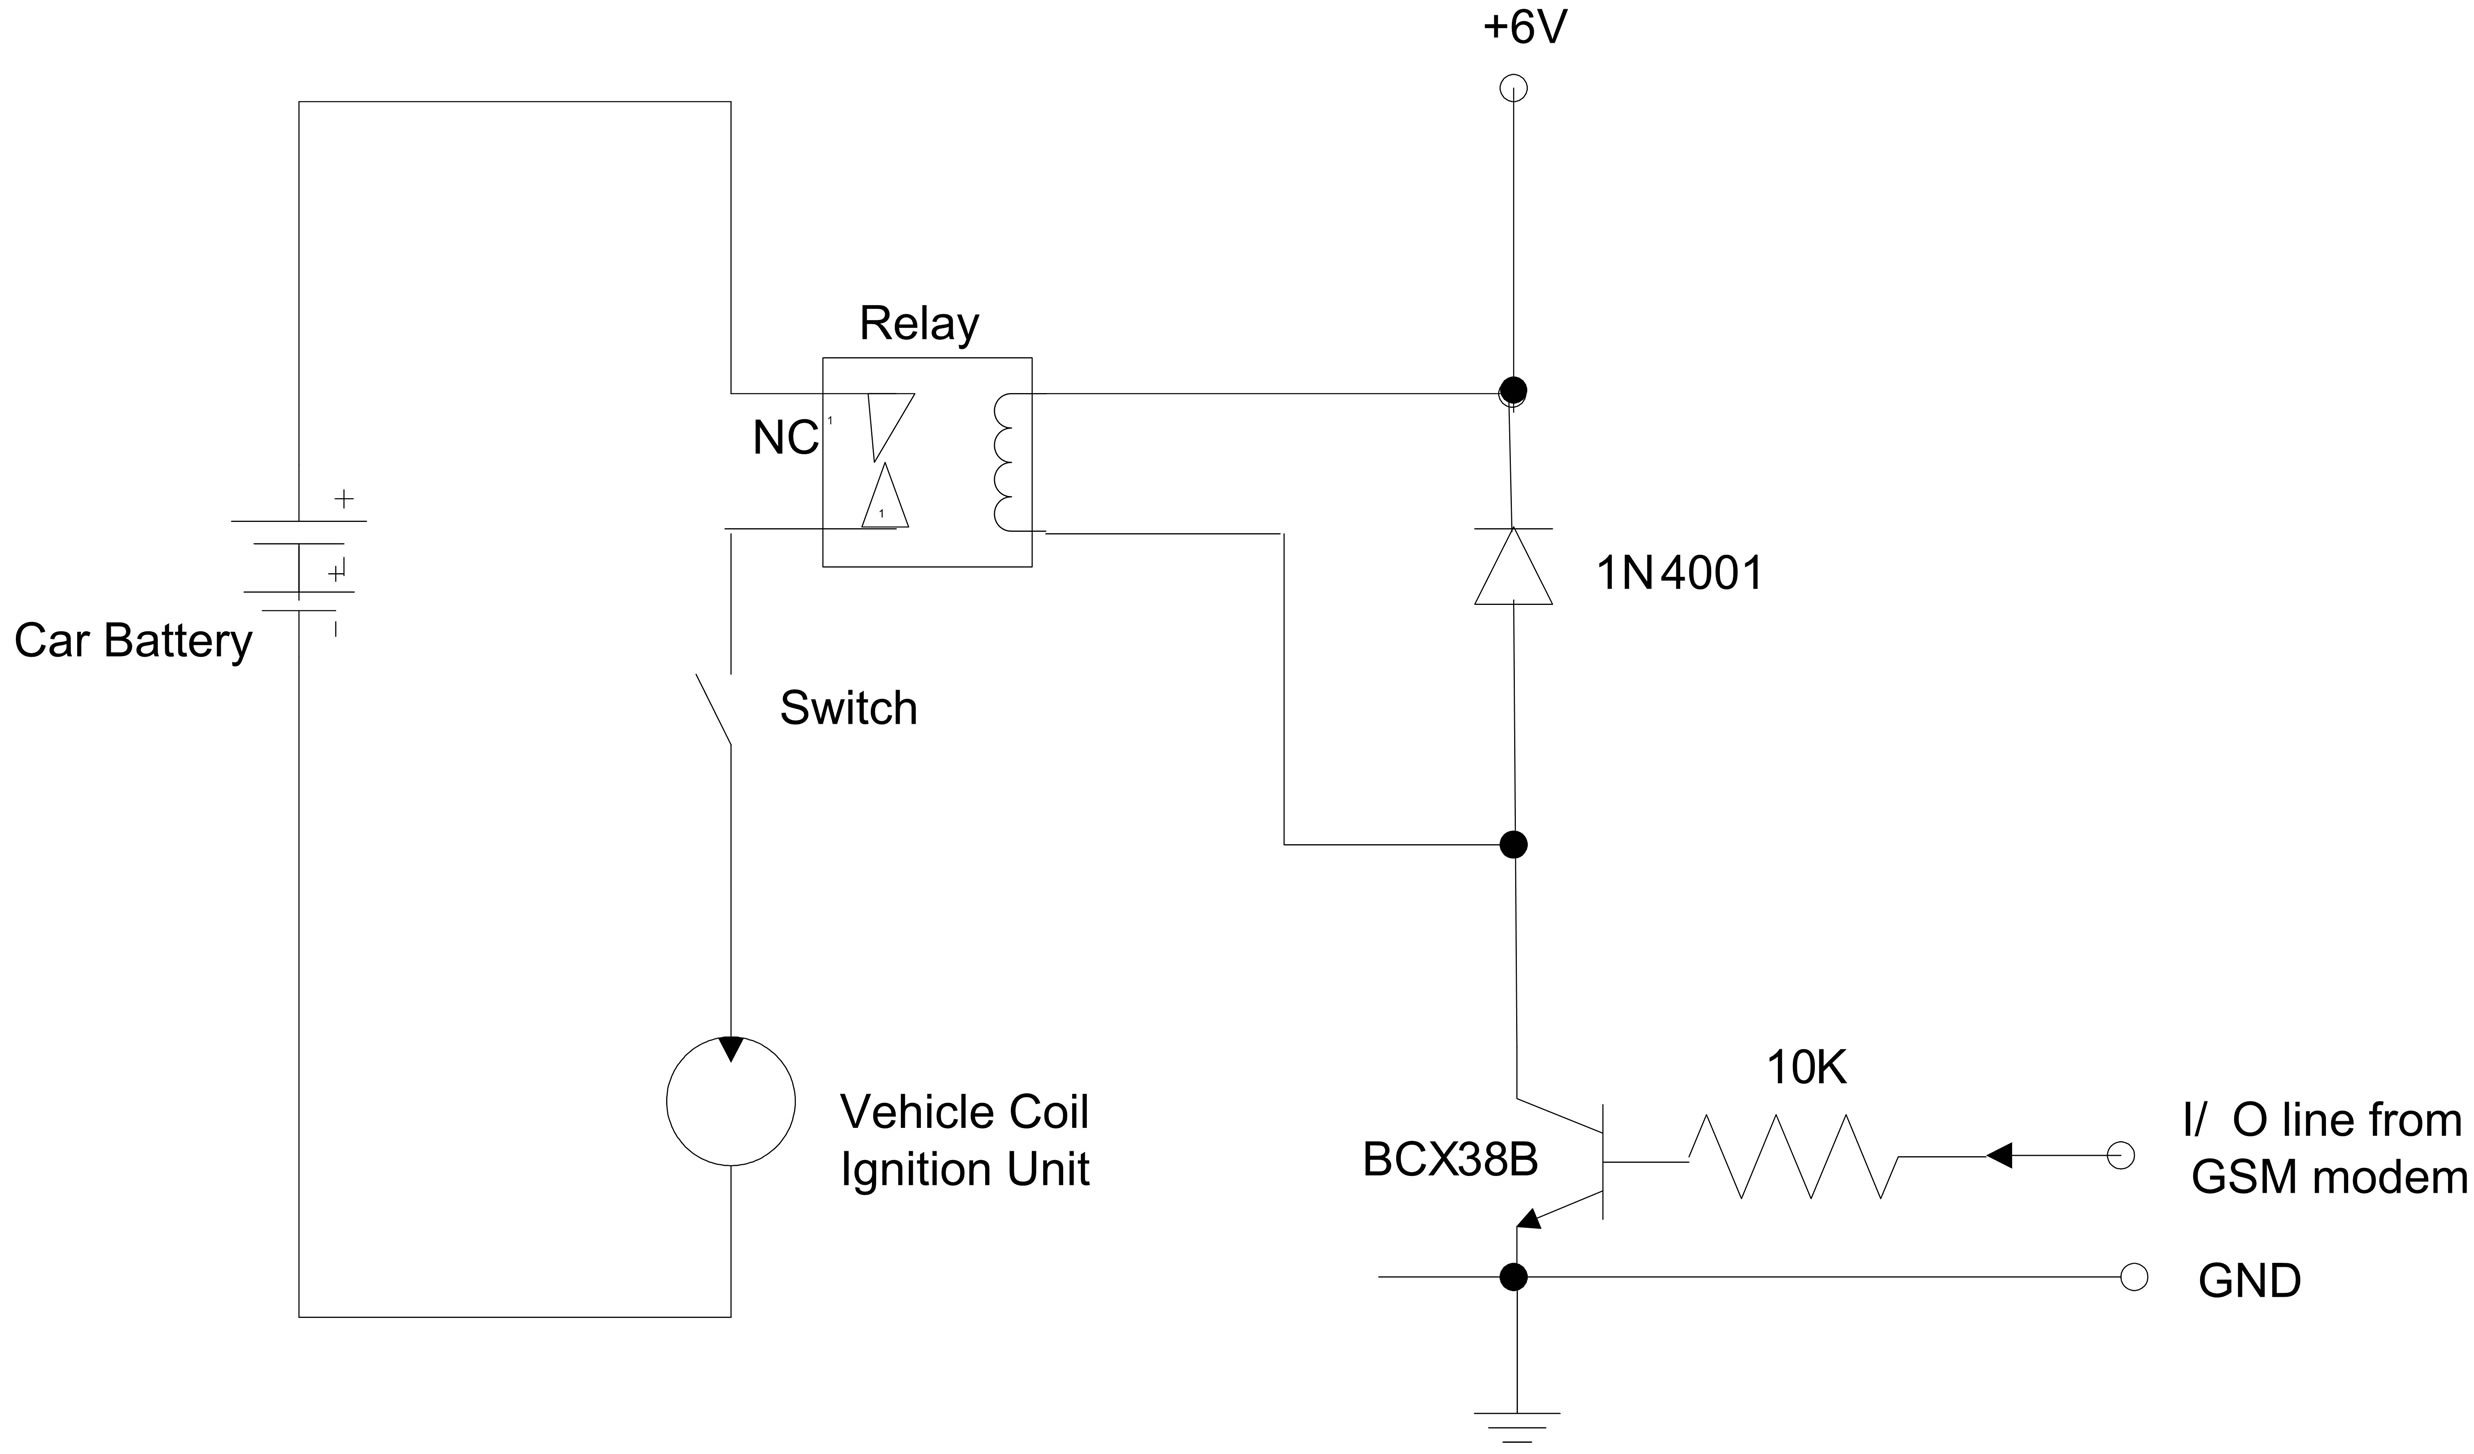 Design And Implementation Of Remotely Controlled Vehicle Anti Theft Relay Switch Figure 4 Demobilizer Interfacing Circuit